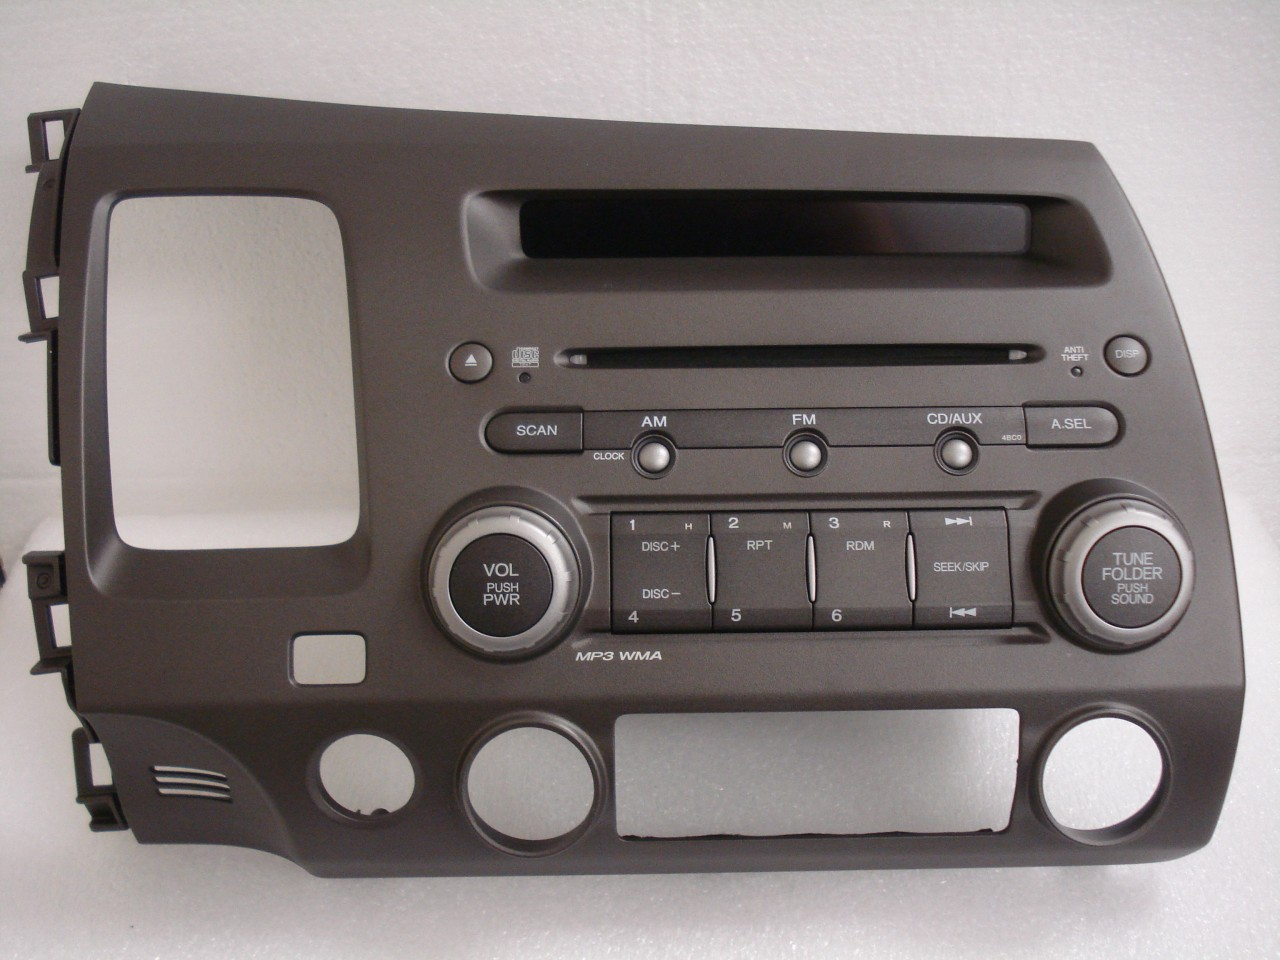 06 07 08 09 honda civic radio stereo mp3 cd player 4bc0. Black Bedroom Furniture Sets. Home Design Ideas